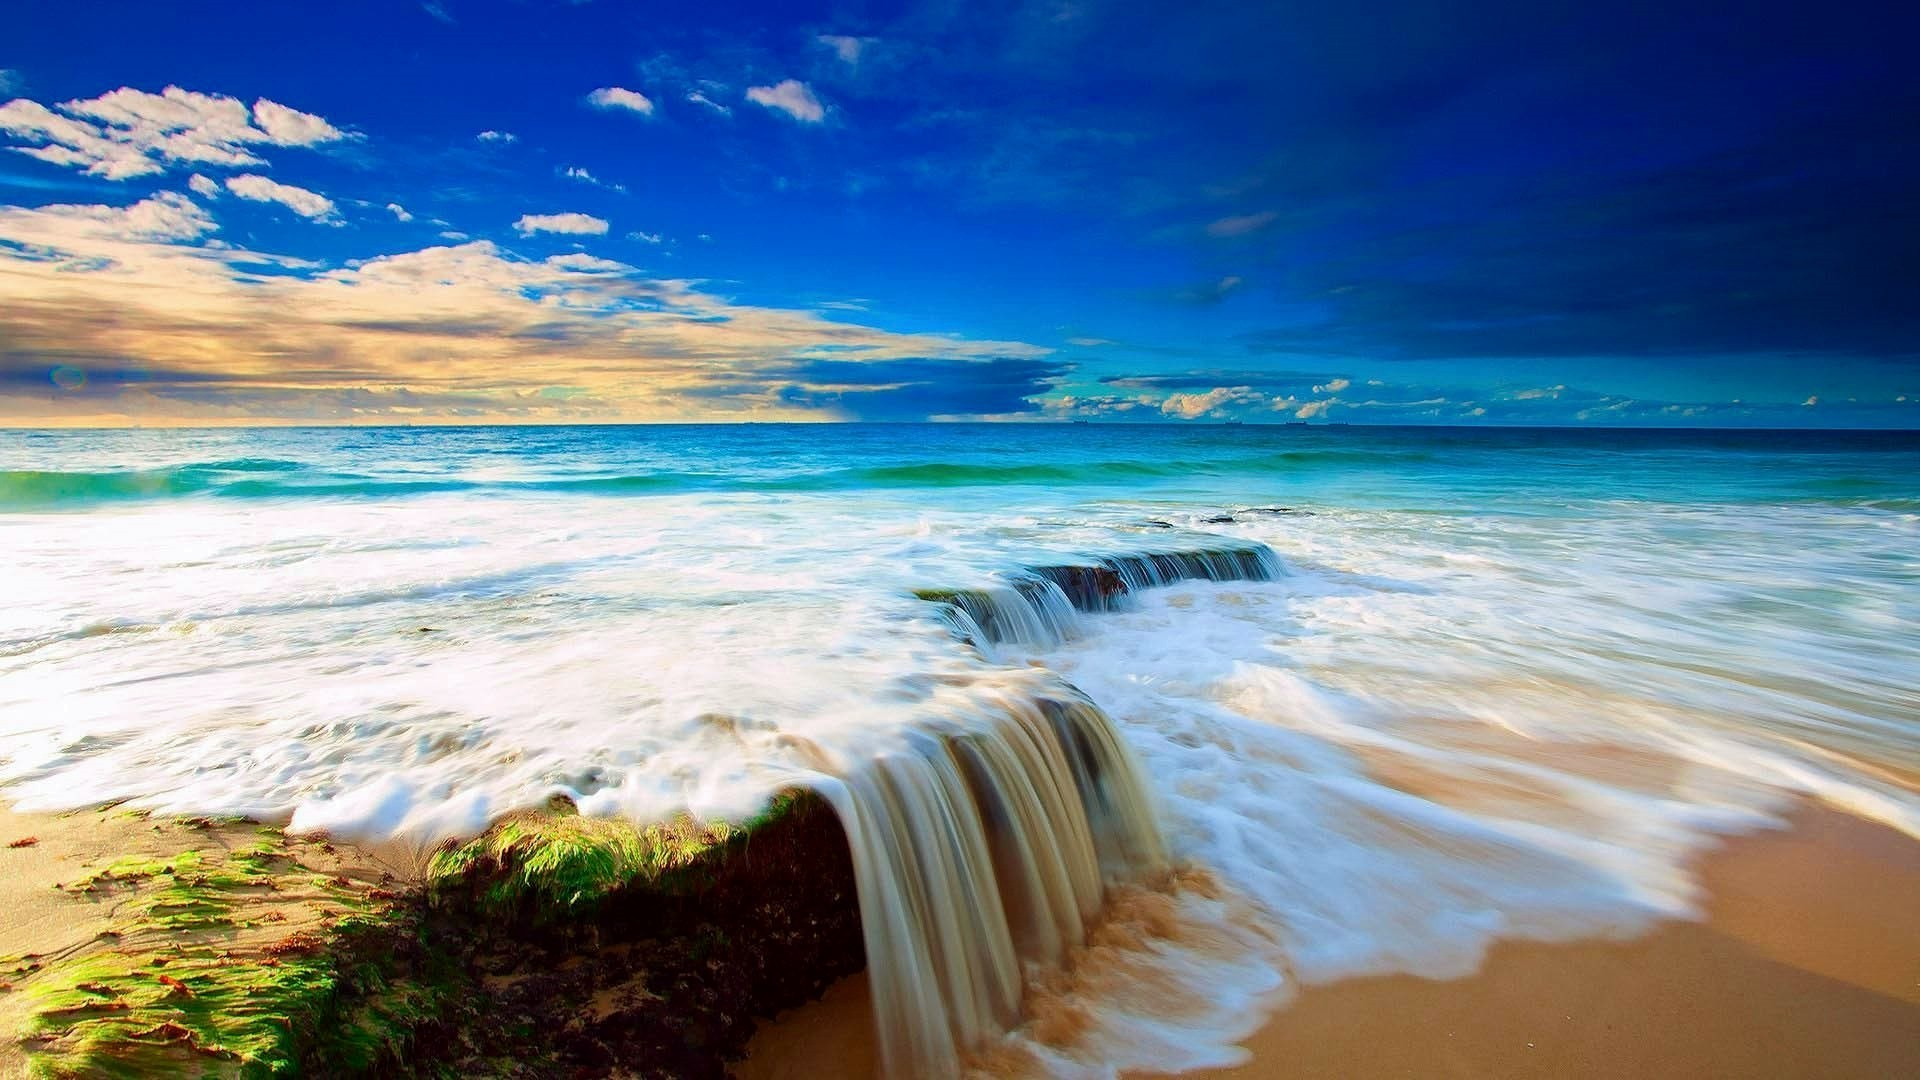 Beautiful Ocean Scenes Wallpaper (46+ Images